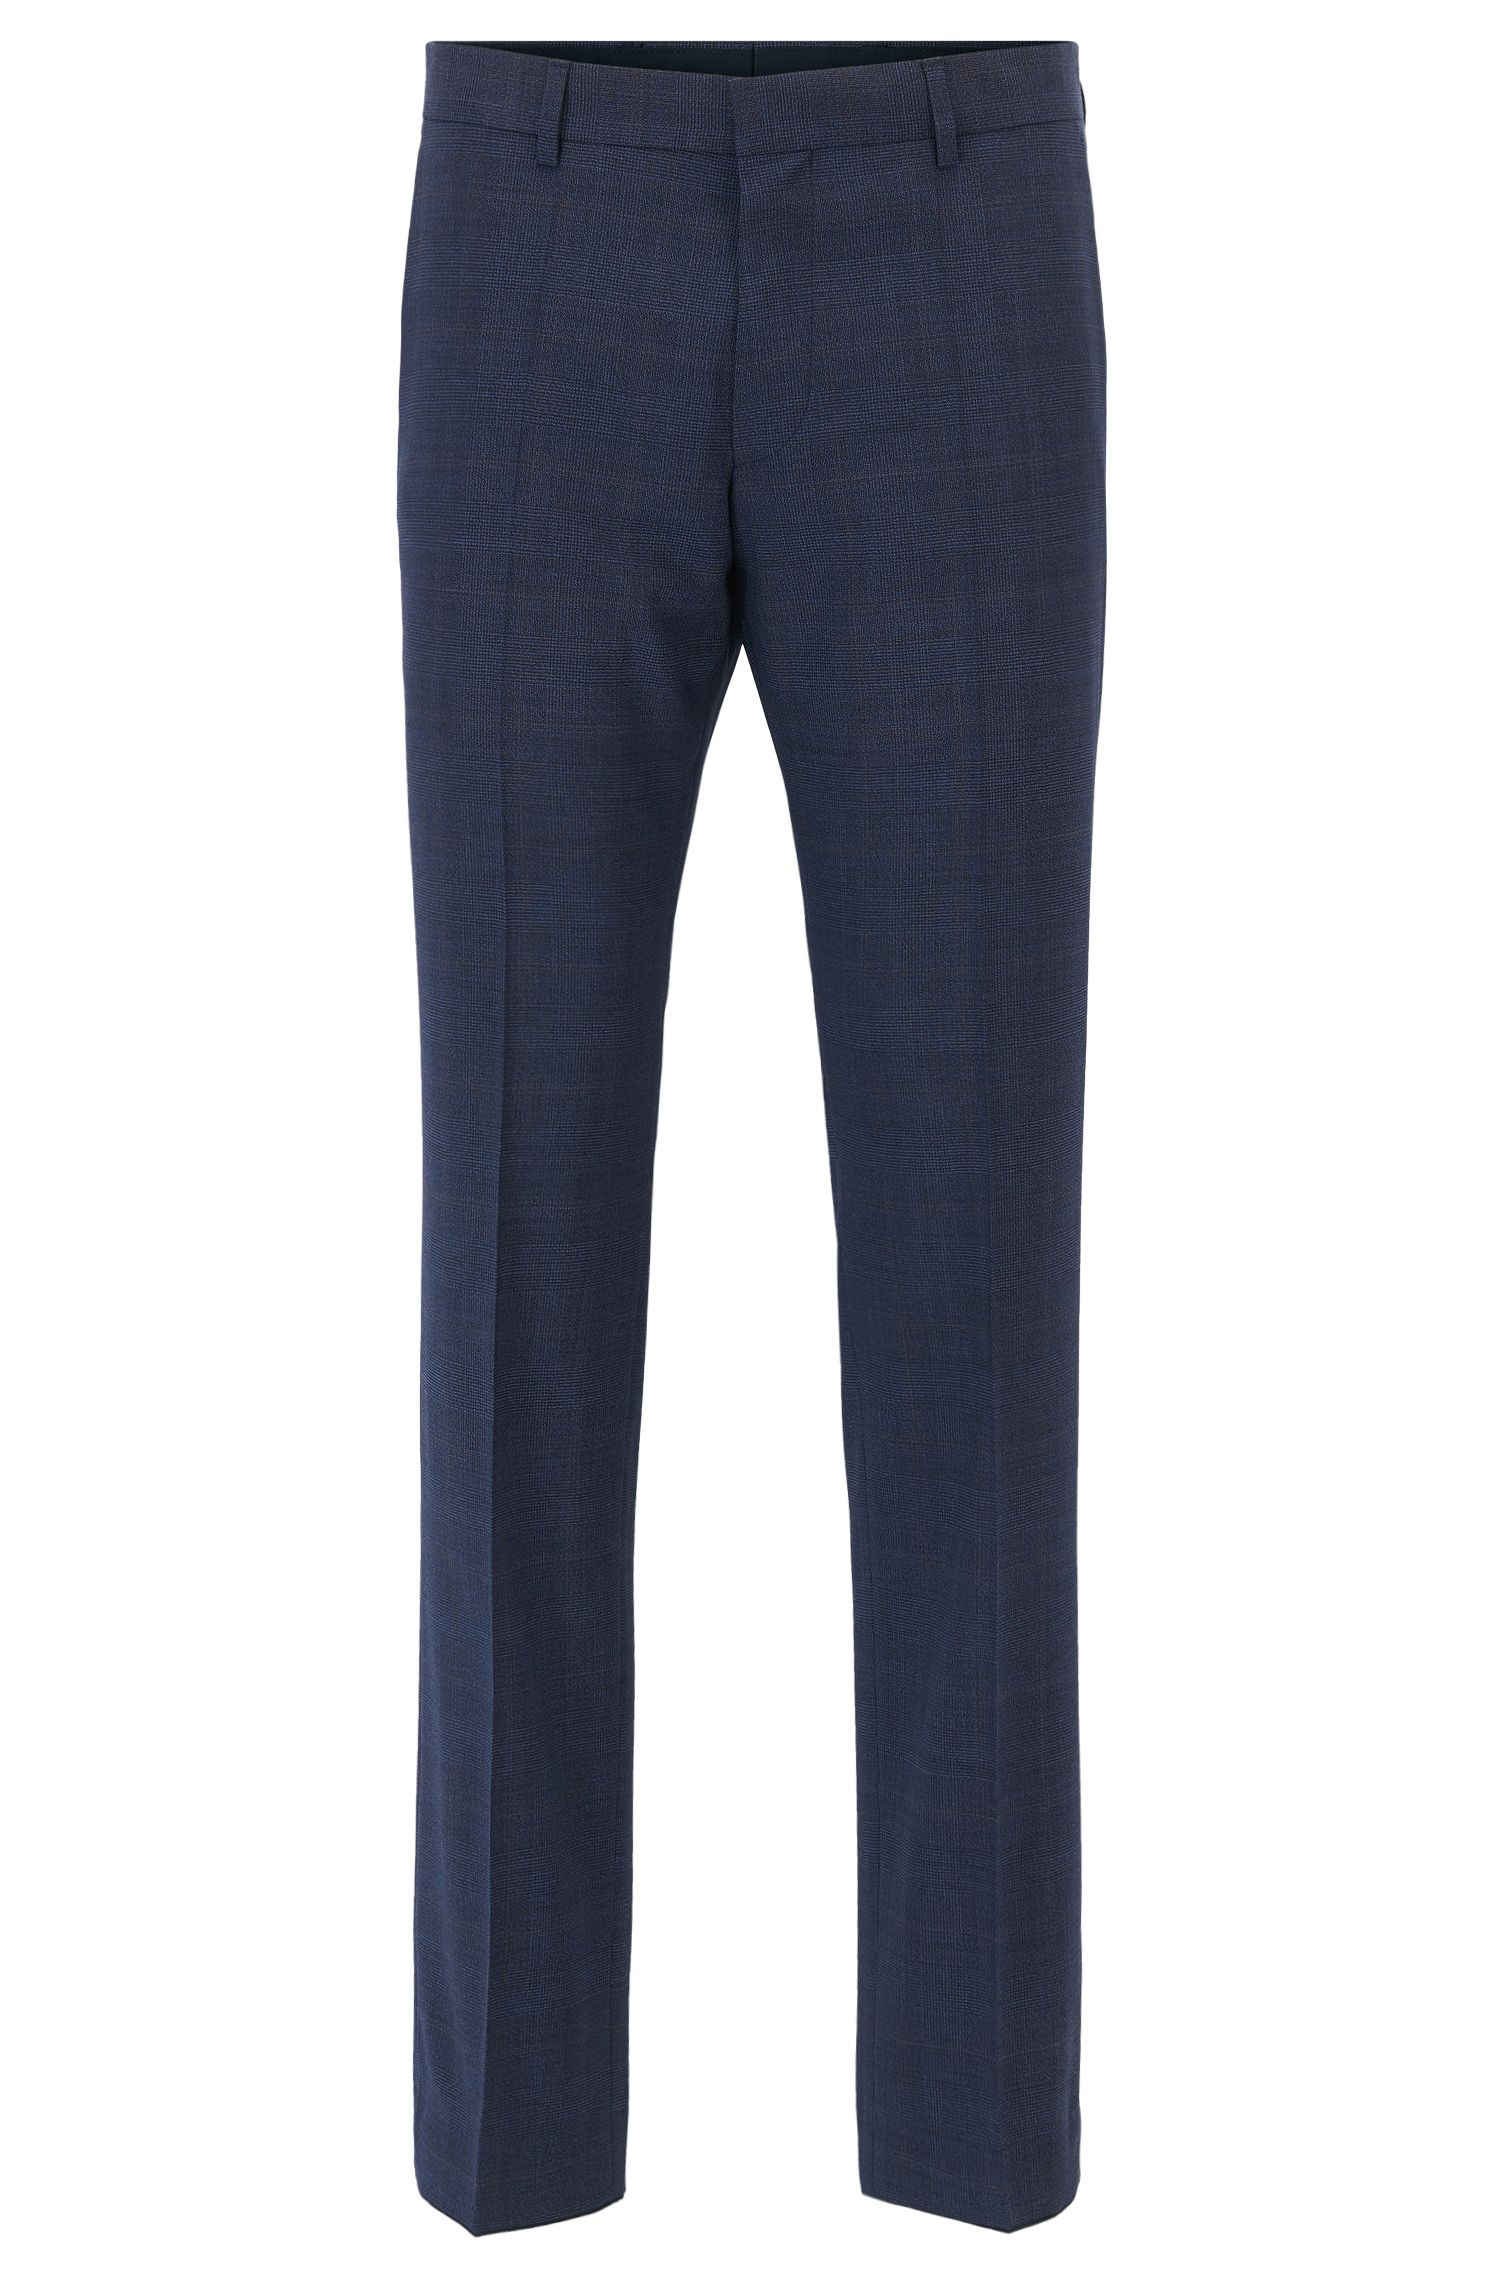 Plaid Virgin Wool Dress Pant, Slim Fit | Genesis